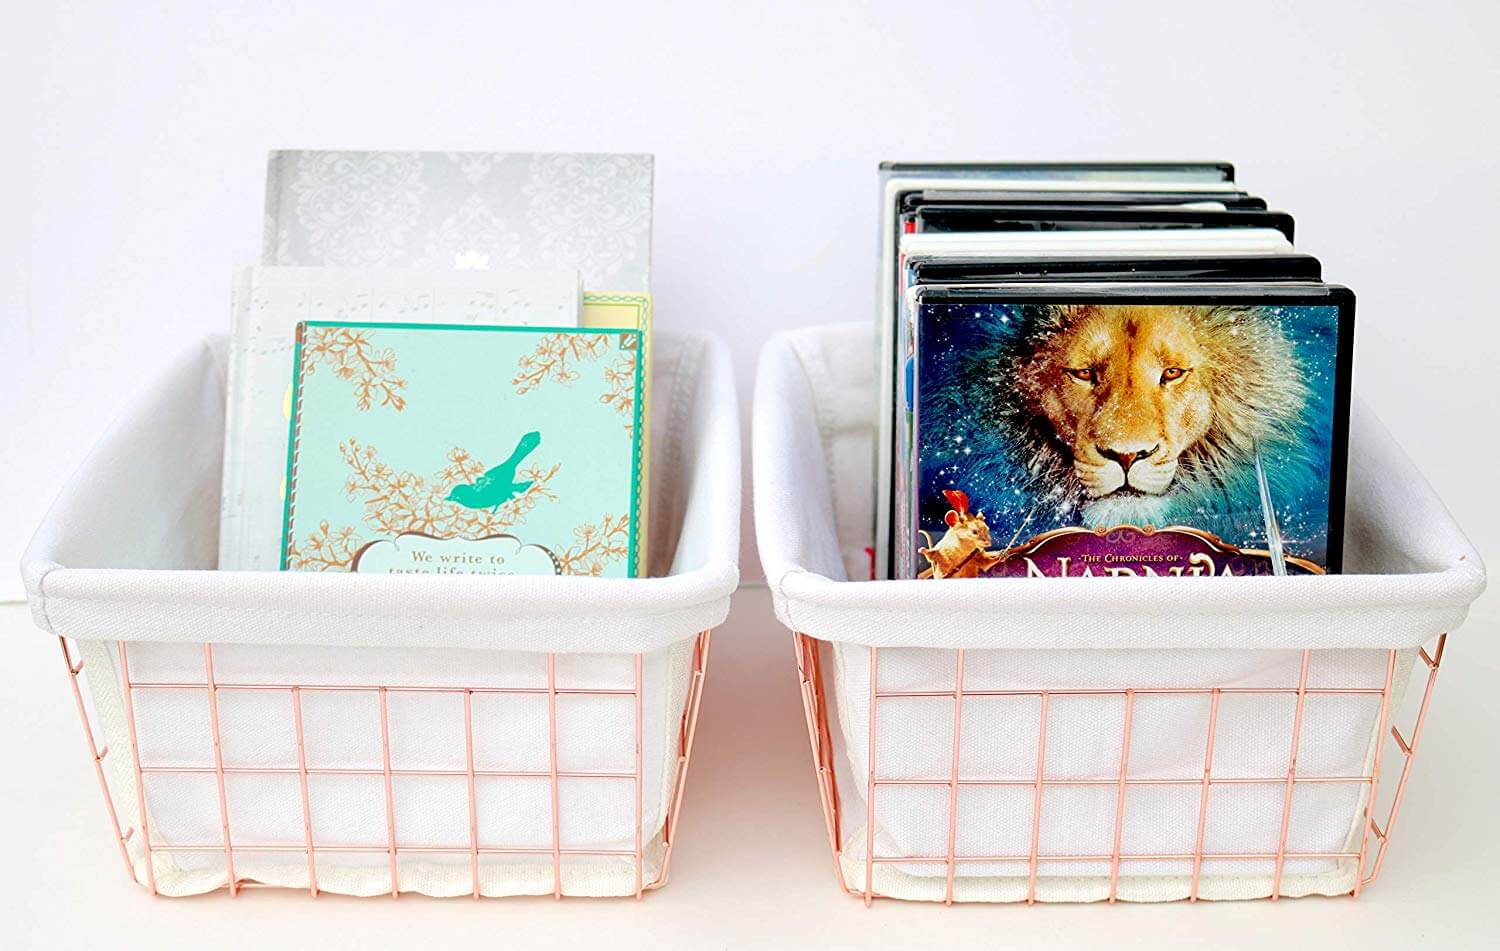 metal wire organizers with books as a product suggestion on how to keep your house clean